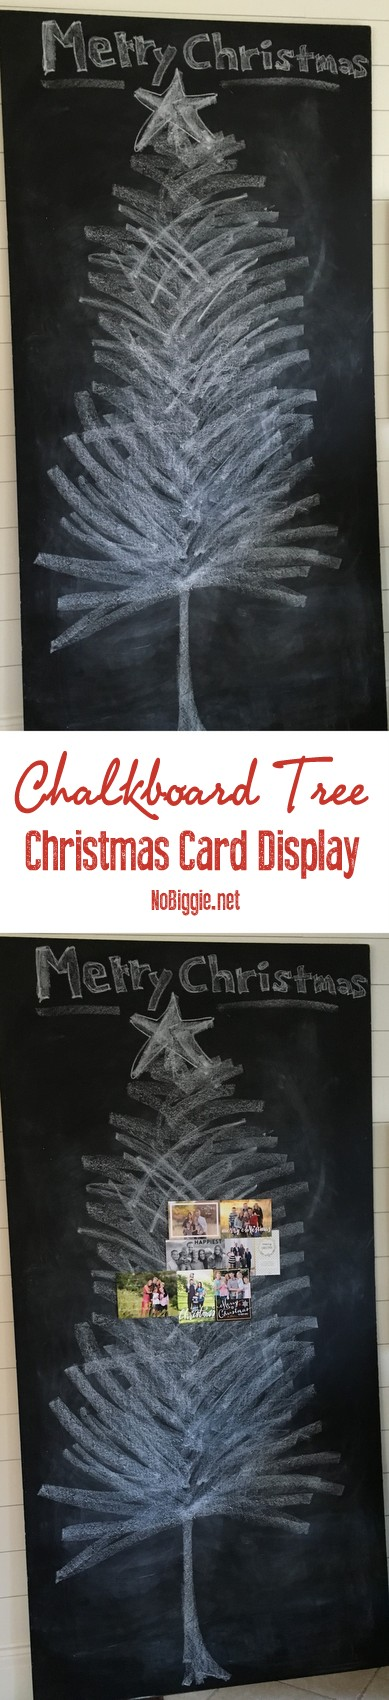 Christmas Card Display | a chalkboard Christmas Tree | get the directions on NoBiggie.net